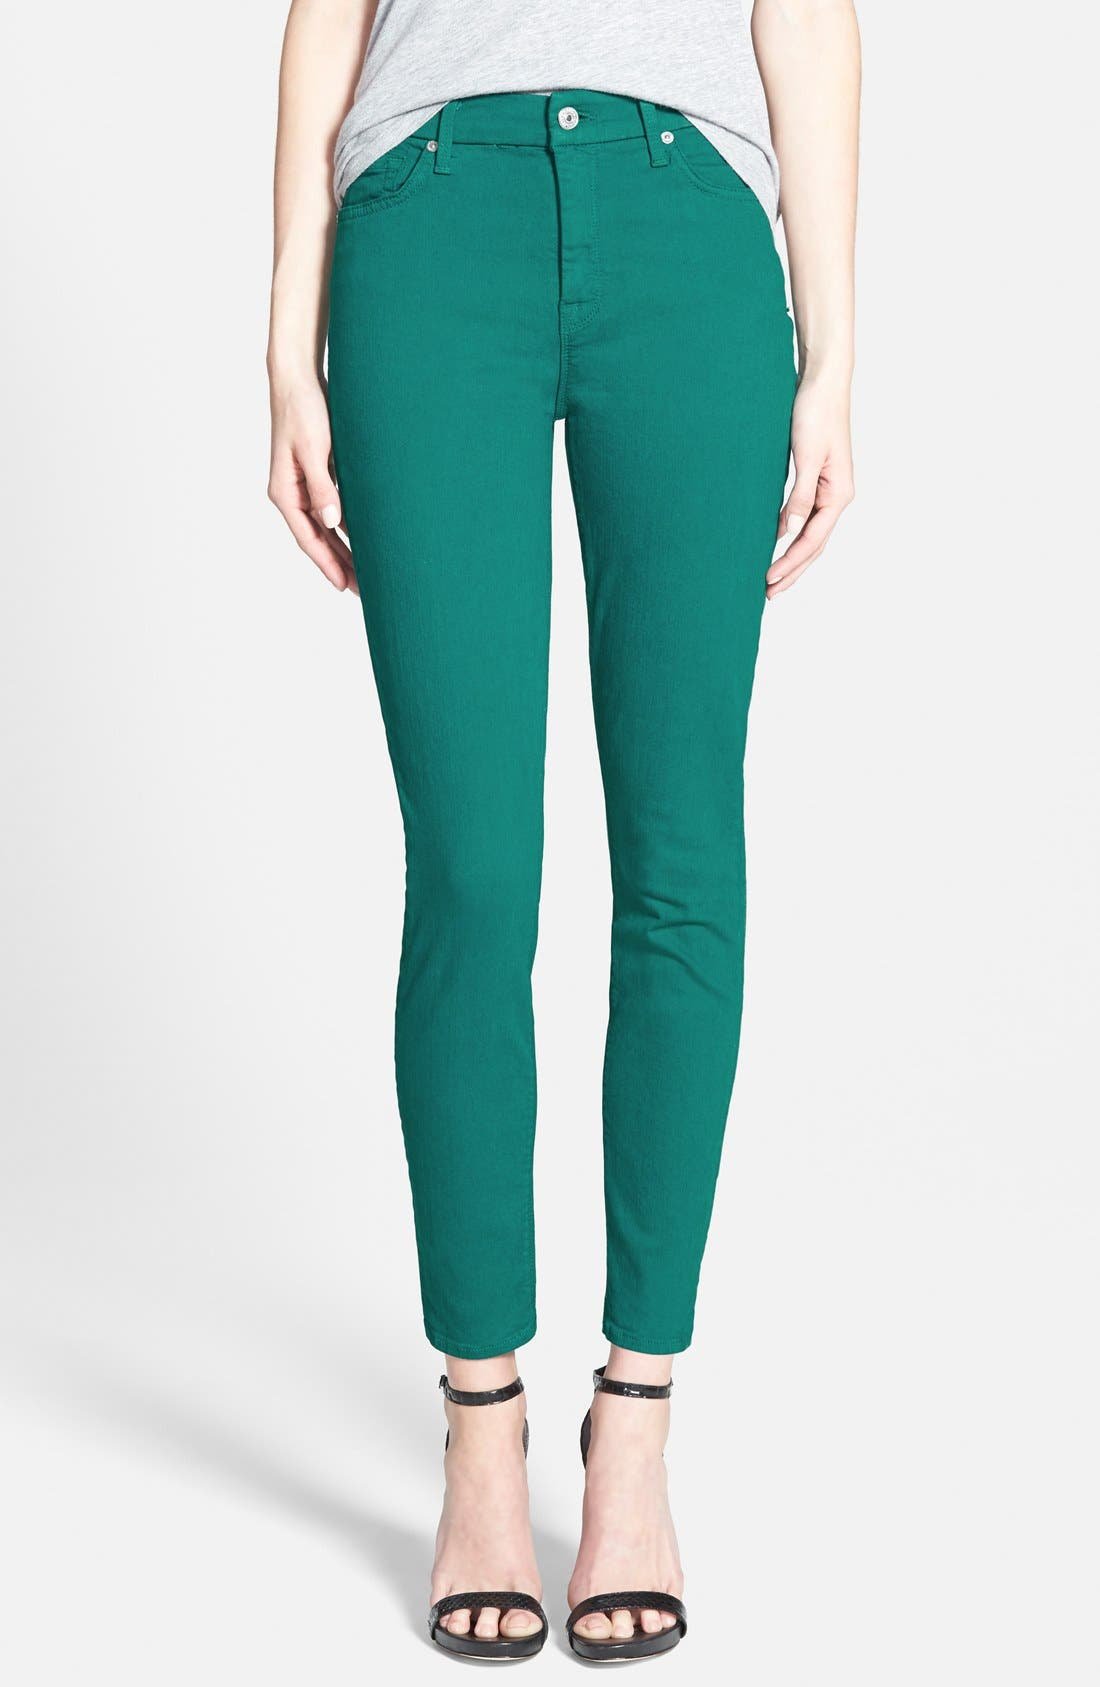 Alternate Image 1 Selected - 7 For All Mankind® High Rise Ankle Skinny Jeans (Teal Green)